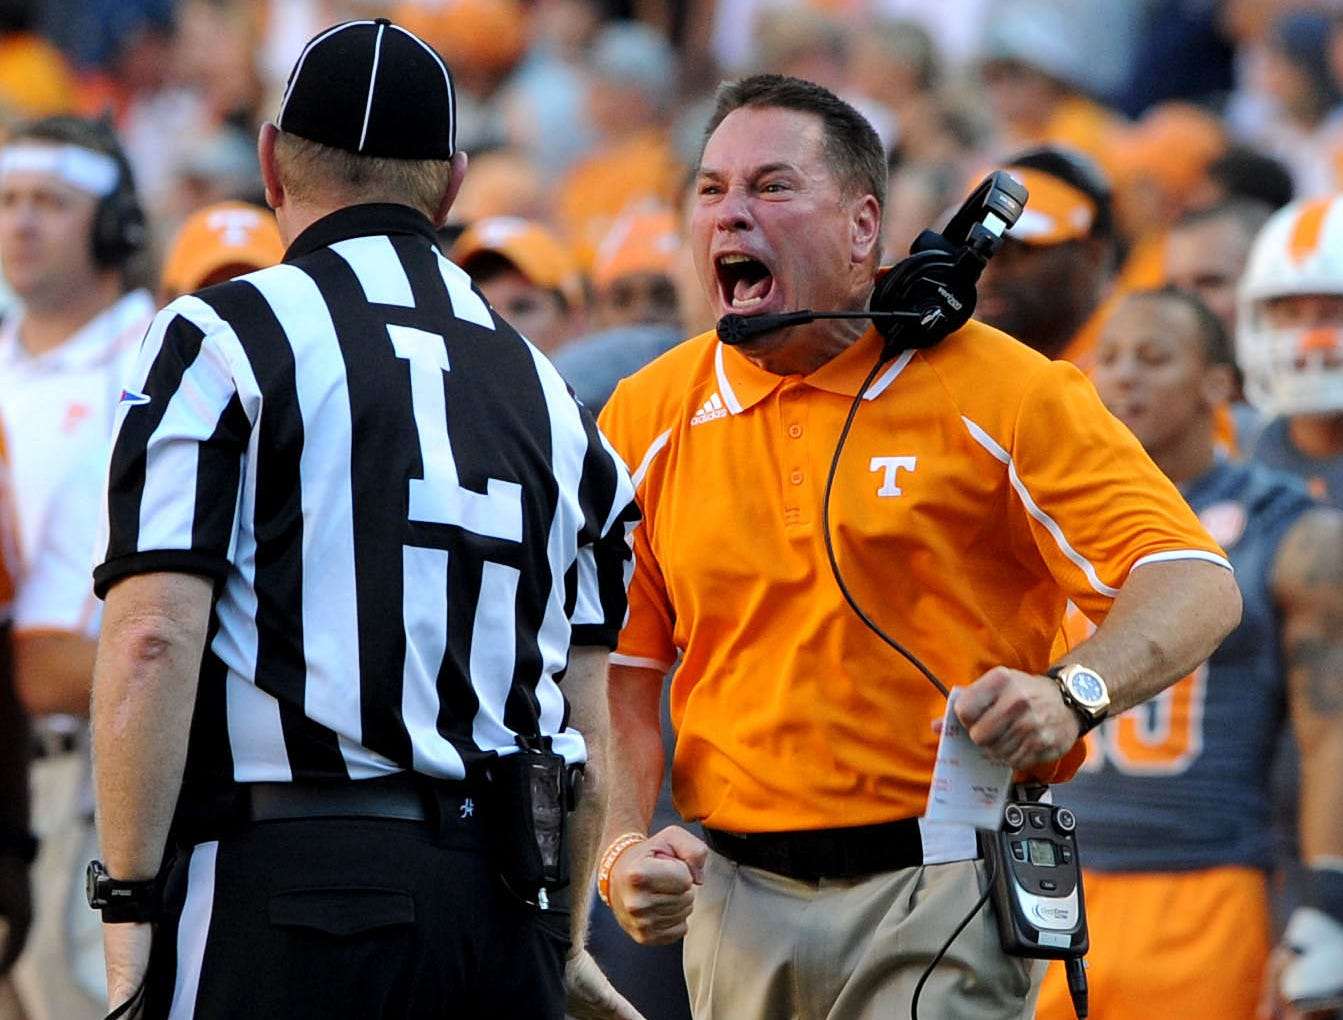 Tennessee head coach Butch Jones yells at a linesman during the second half against Georgia Saturday, Oct. 5, 2013 in Neyland Stadium in Knoxville.  Jones was called for a personal foul.  (MICHAEL PATRICK/NEWS SENTINEL)